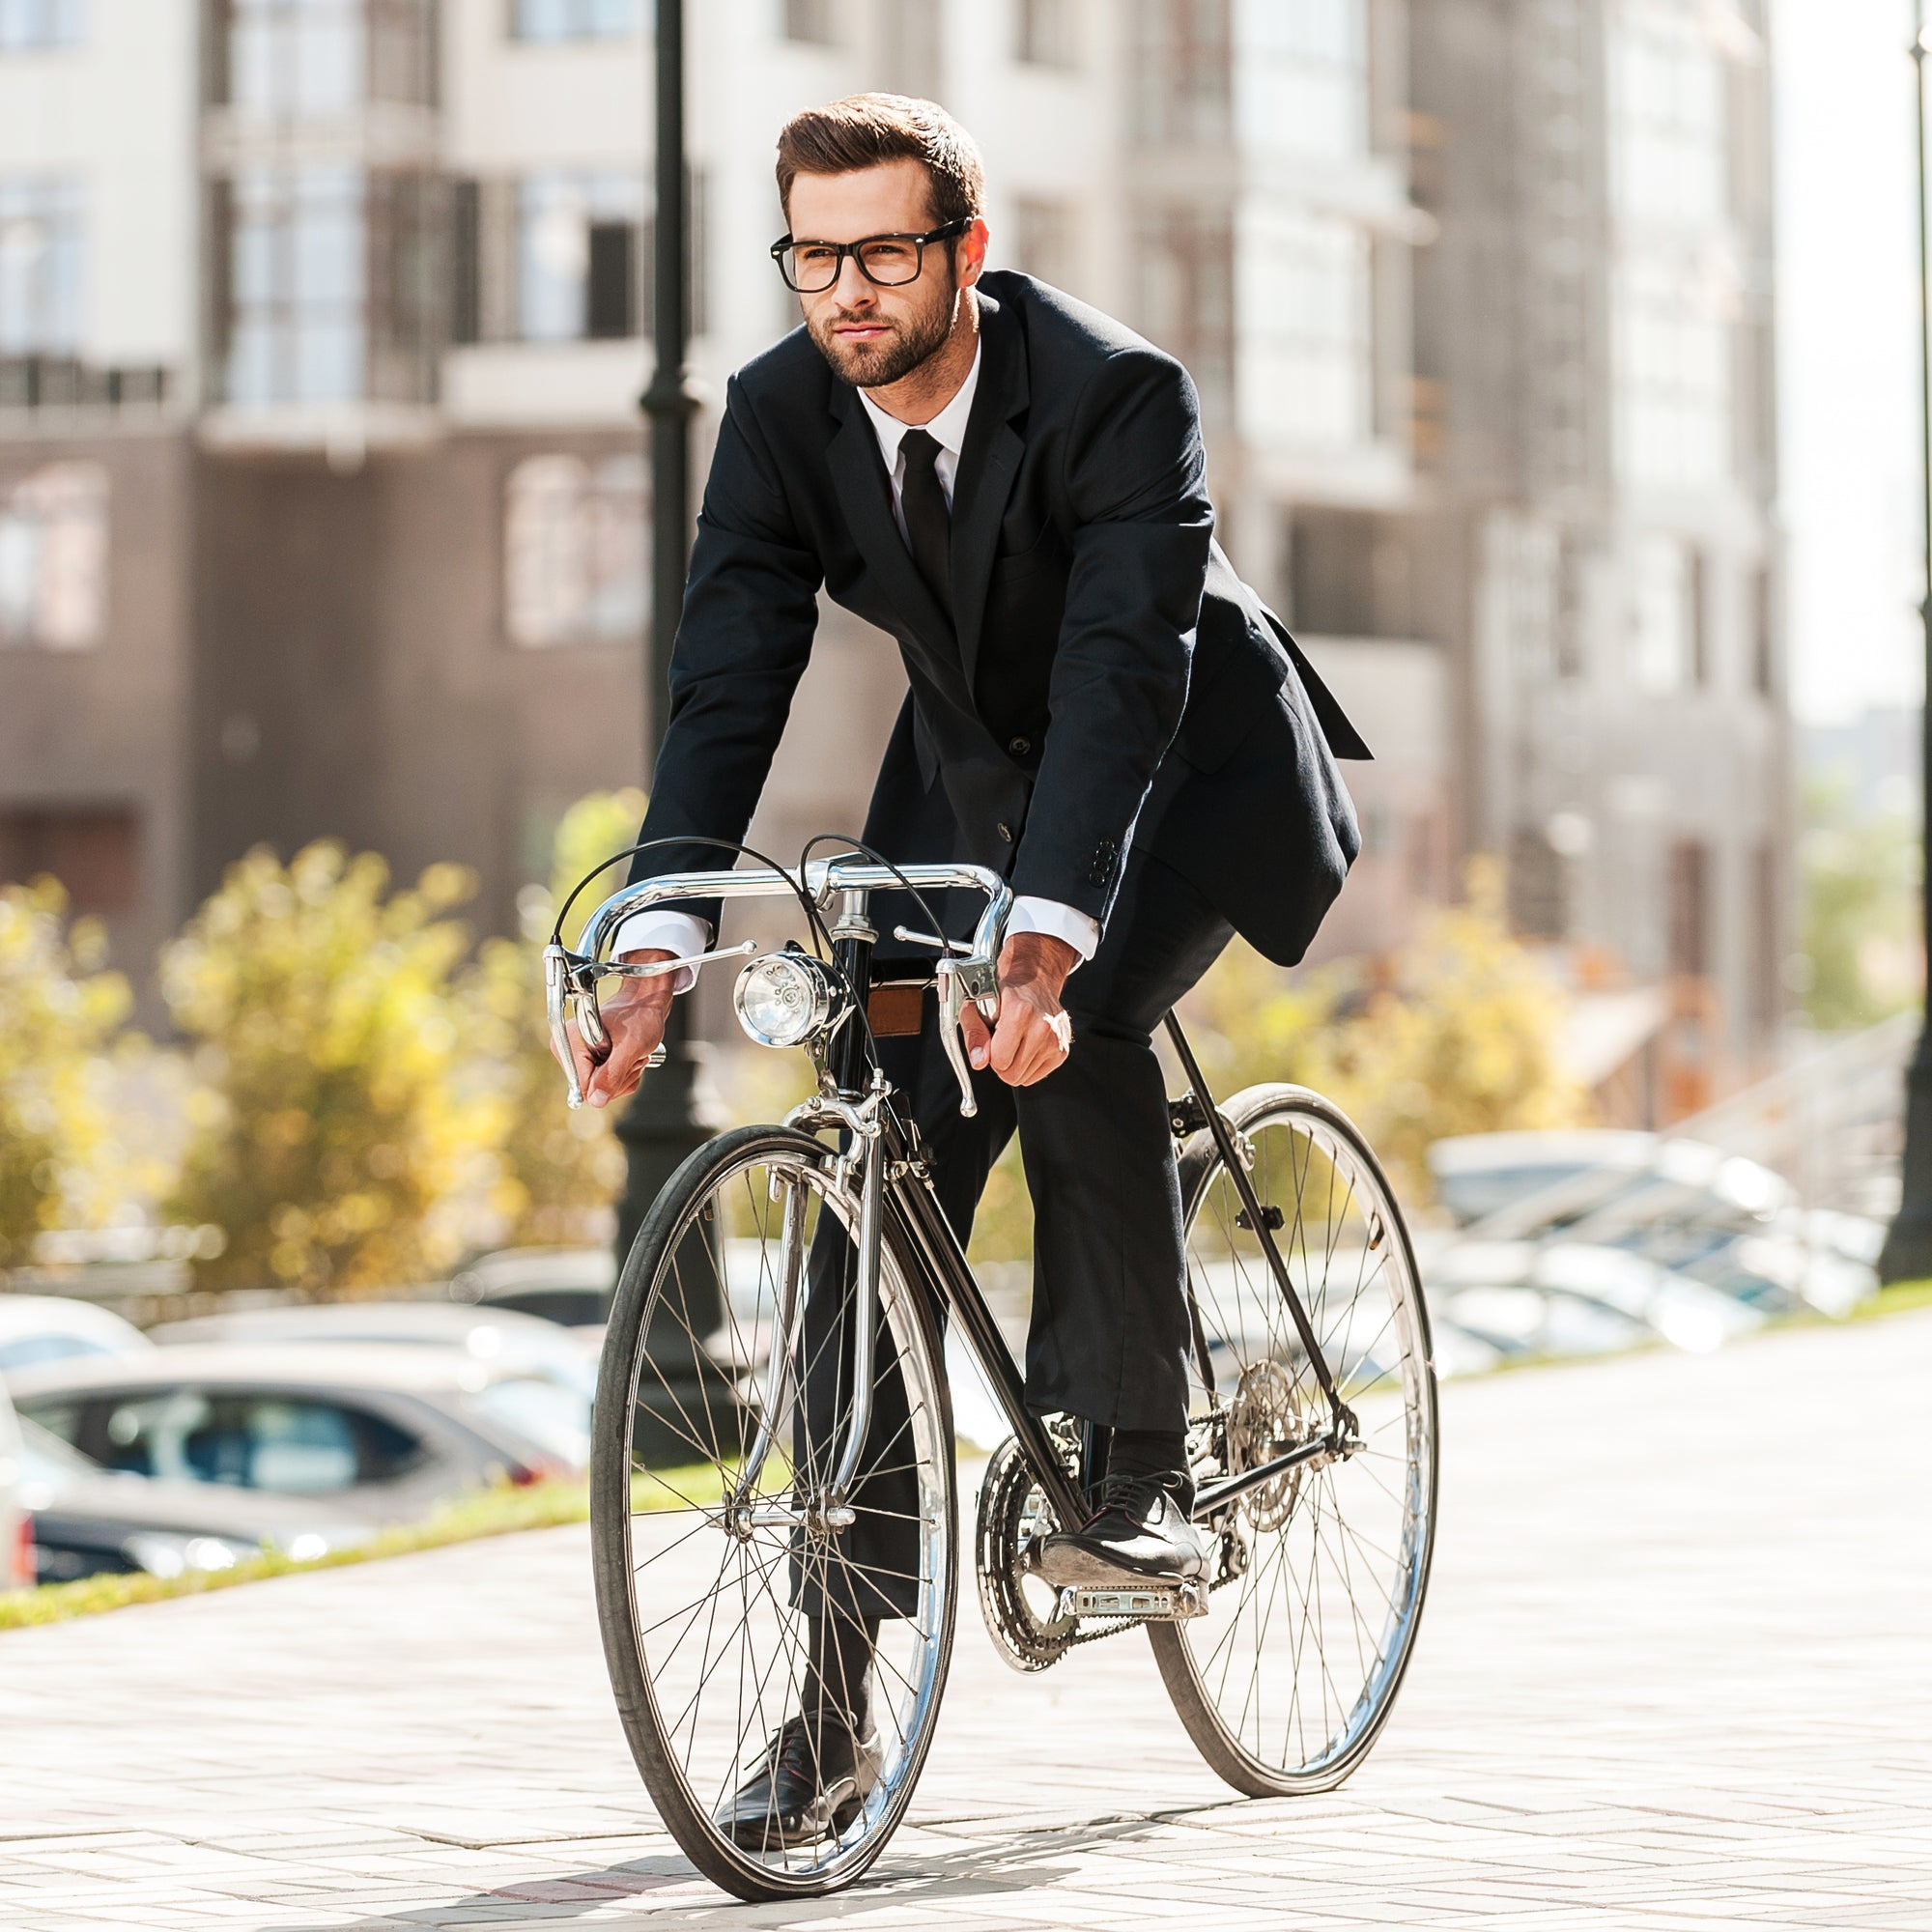 Bicycles For Men Who Commute In A Suit